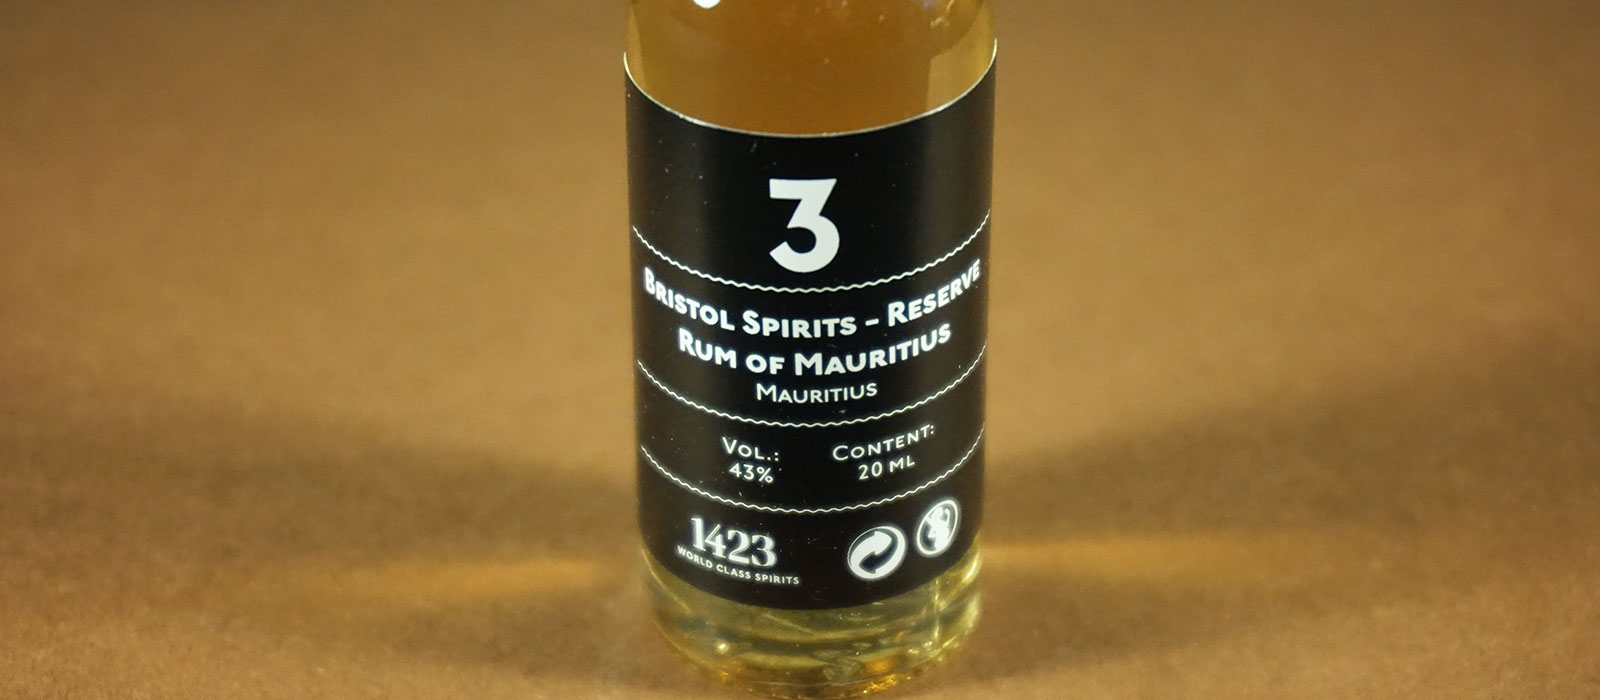 24 Days of Rum 2017: Dag 3 – Bristol Spirits Reserve Rum of Mauritius 5 years